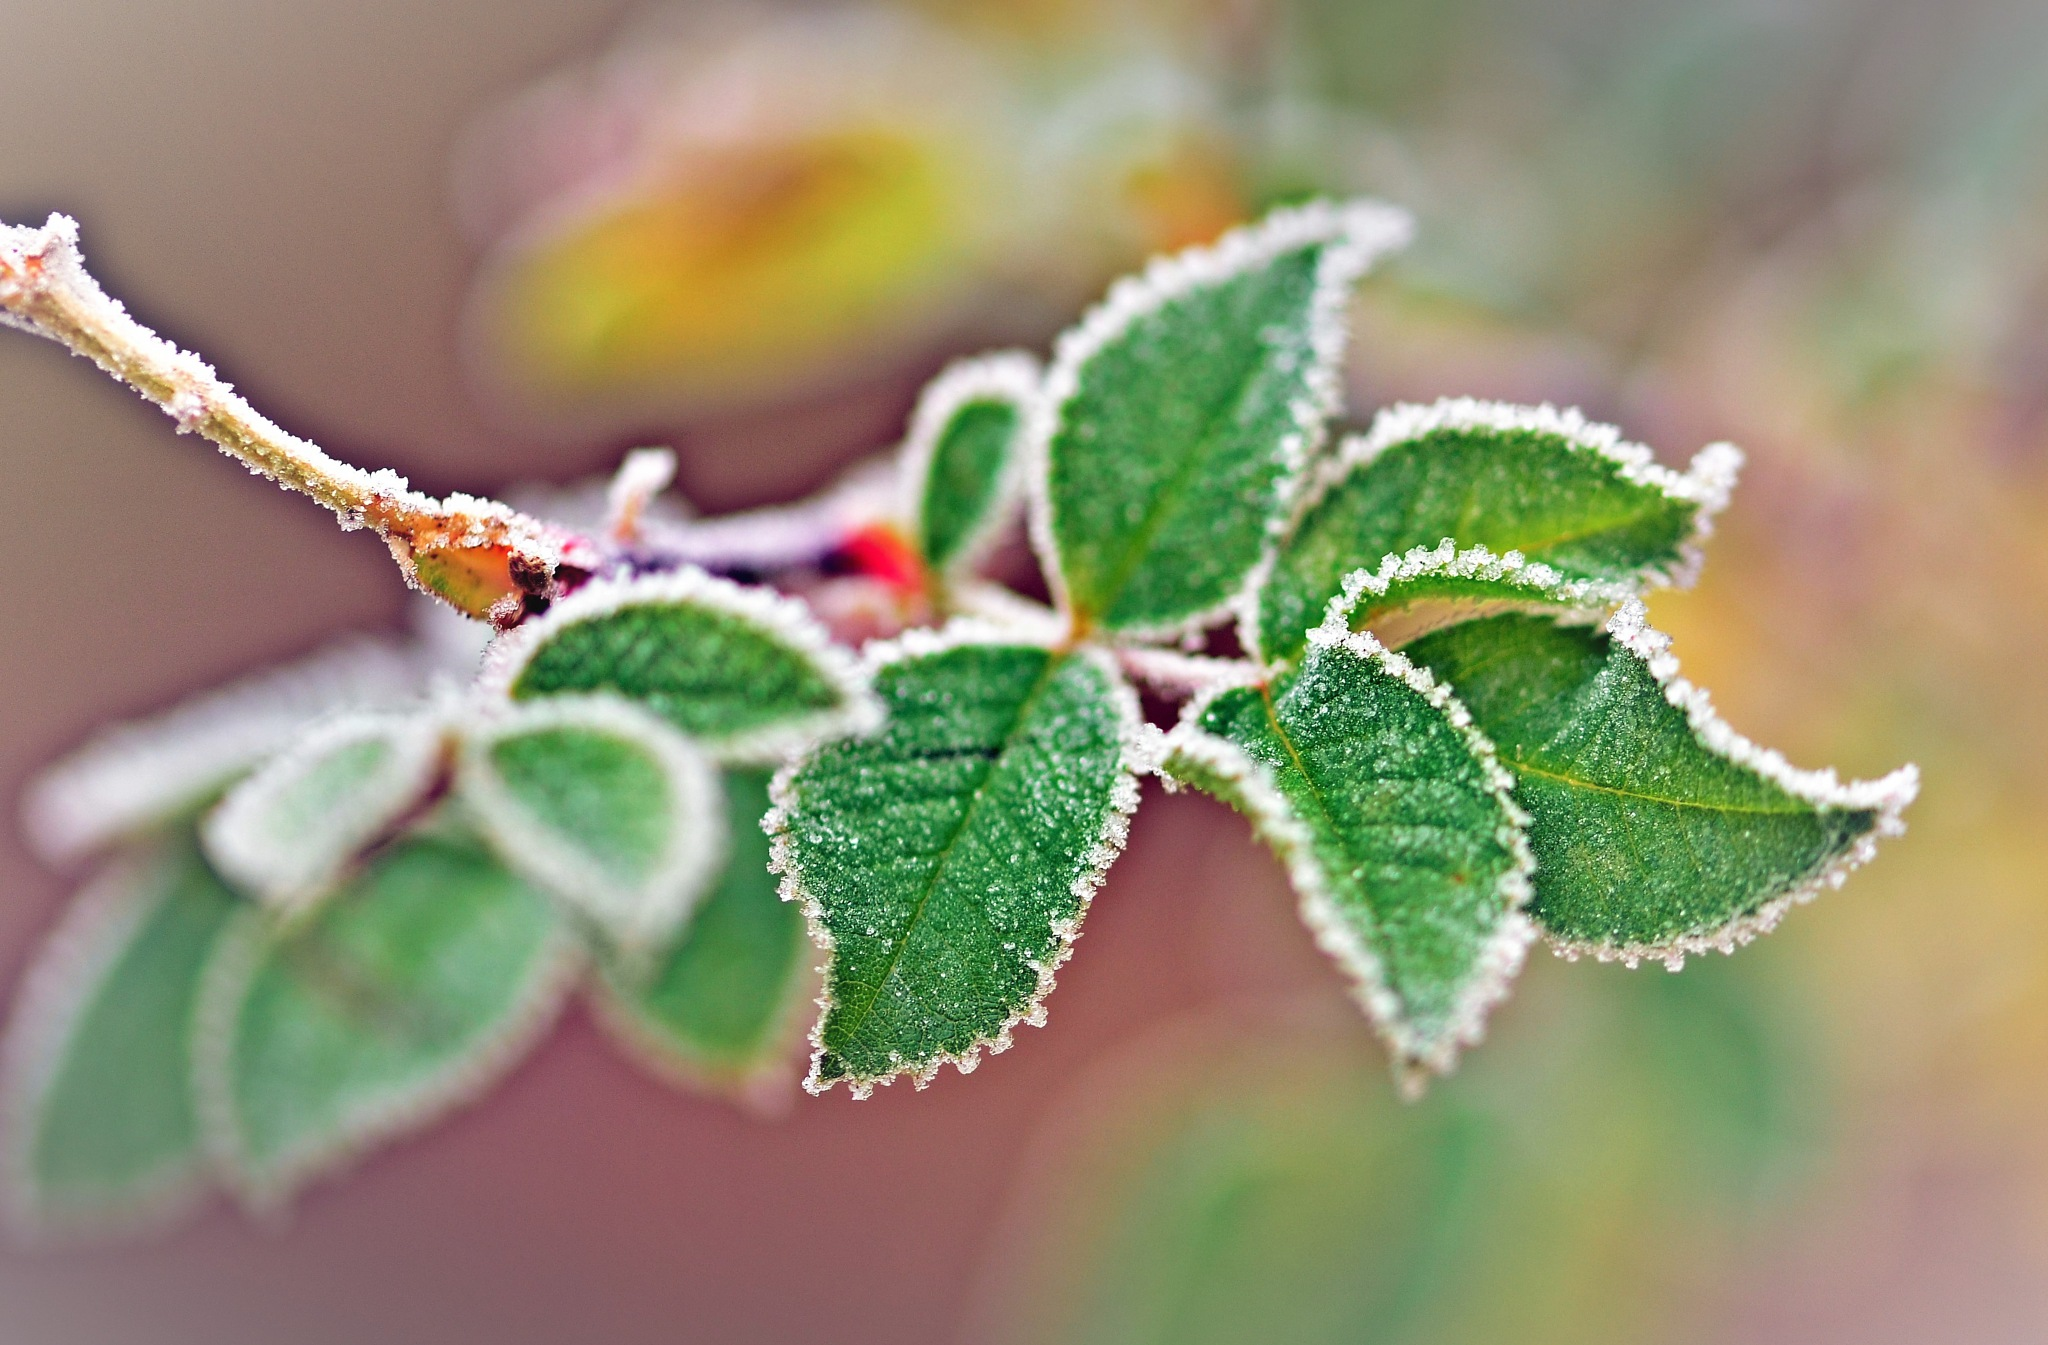 Hip leaves by rollepersson